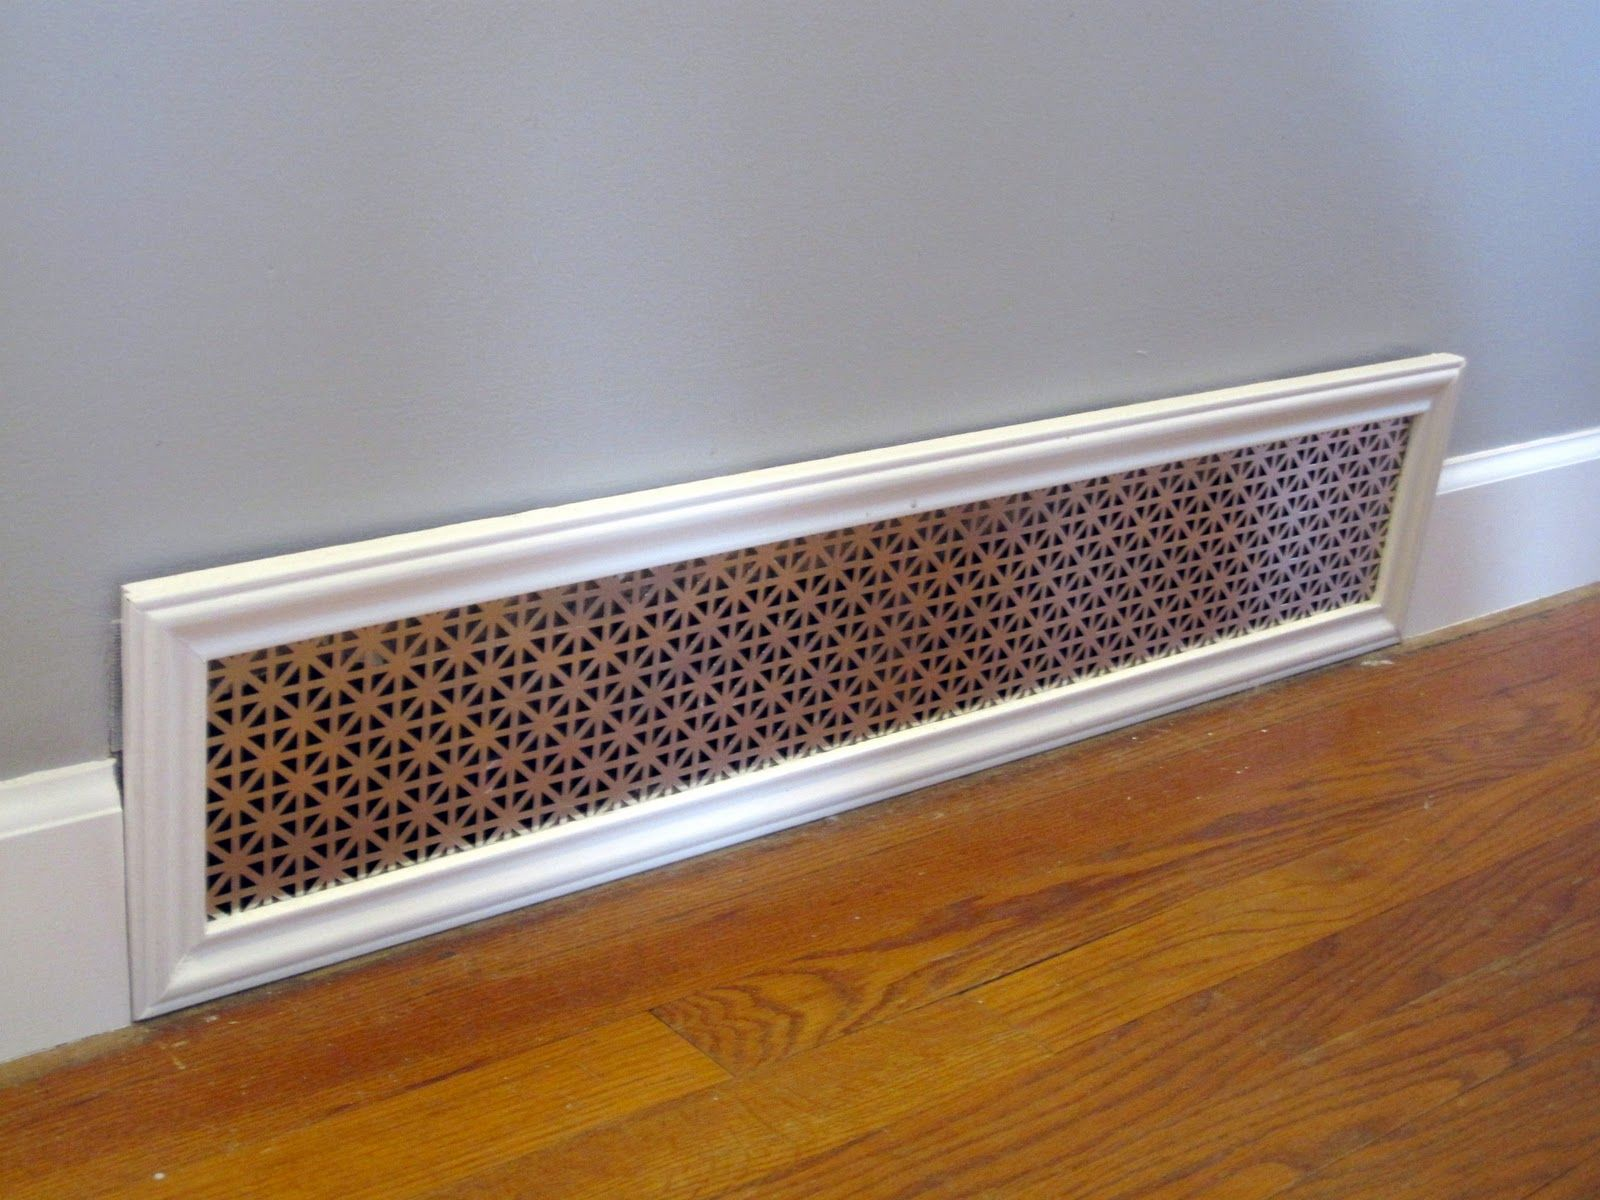 Decorative Return Air Vent Cover Nicely Framed And Blends With